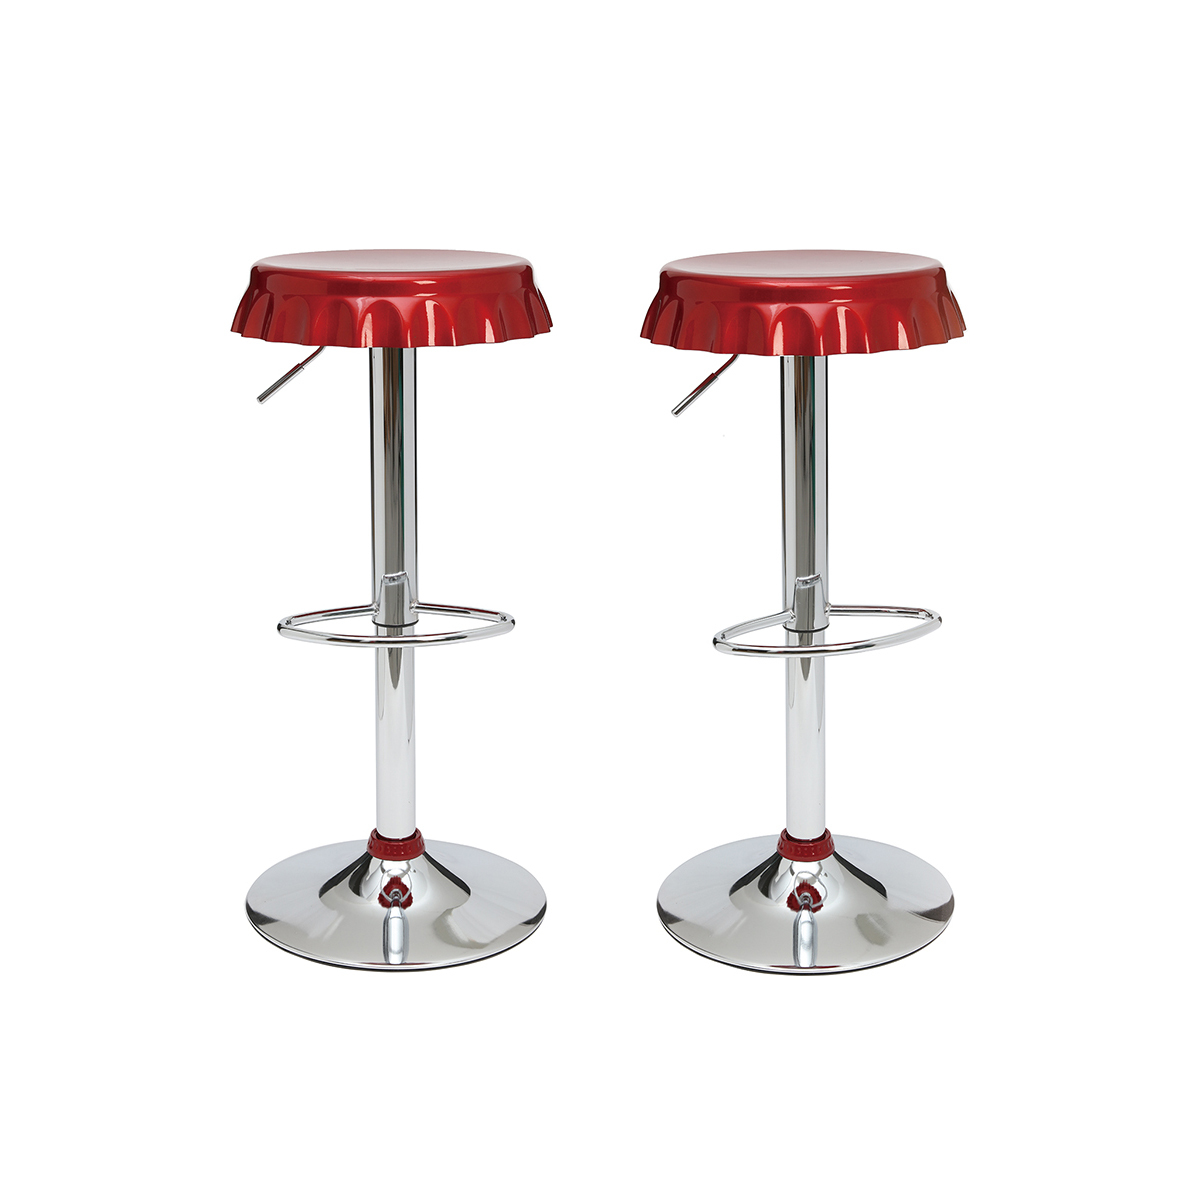 Tabourets De Bar New Cab Tabouret De Bar Rouge